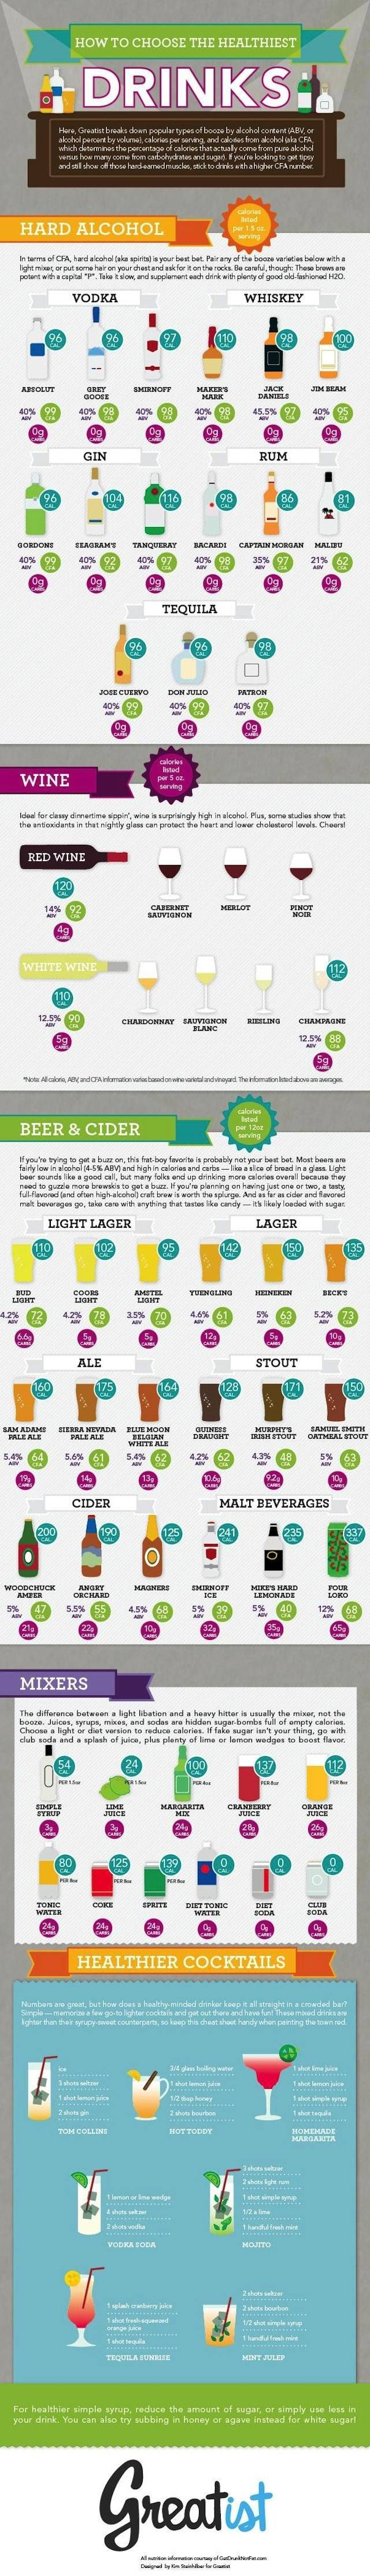 Best 25 alcoholic drinks on keto ideas on pinterest alcoholic bottoms up choosing healthier drinks nvjuhfo Choice Image